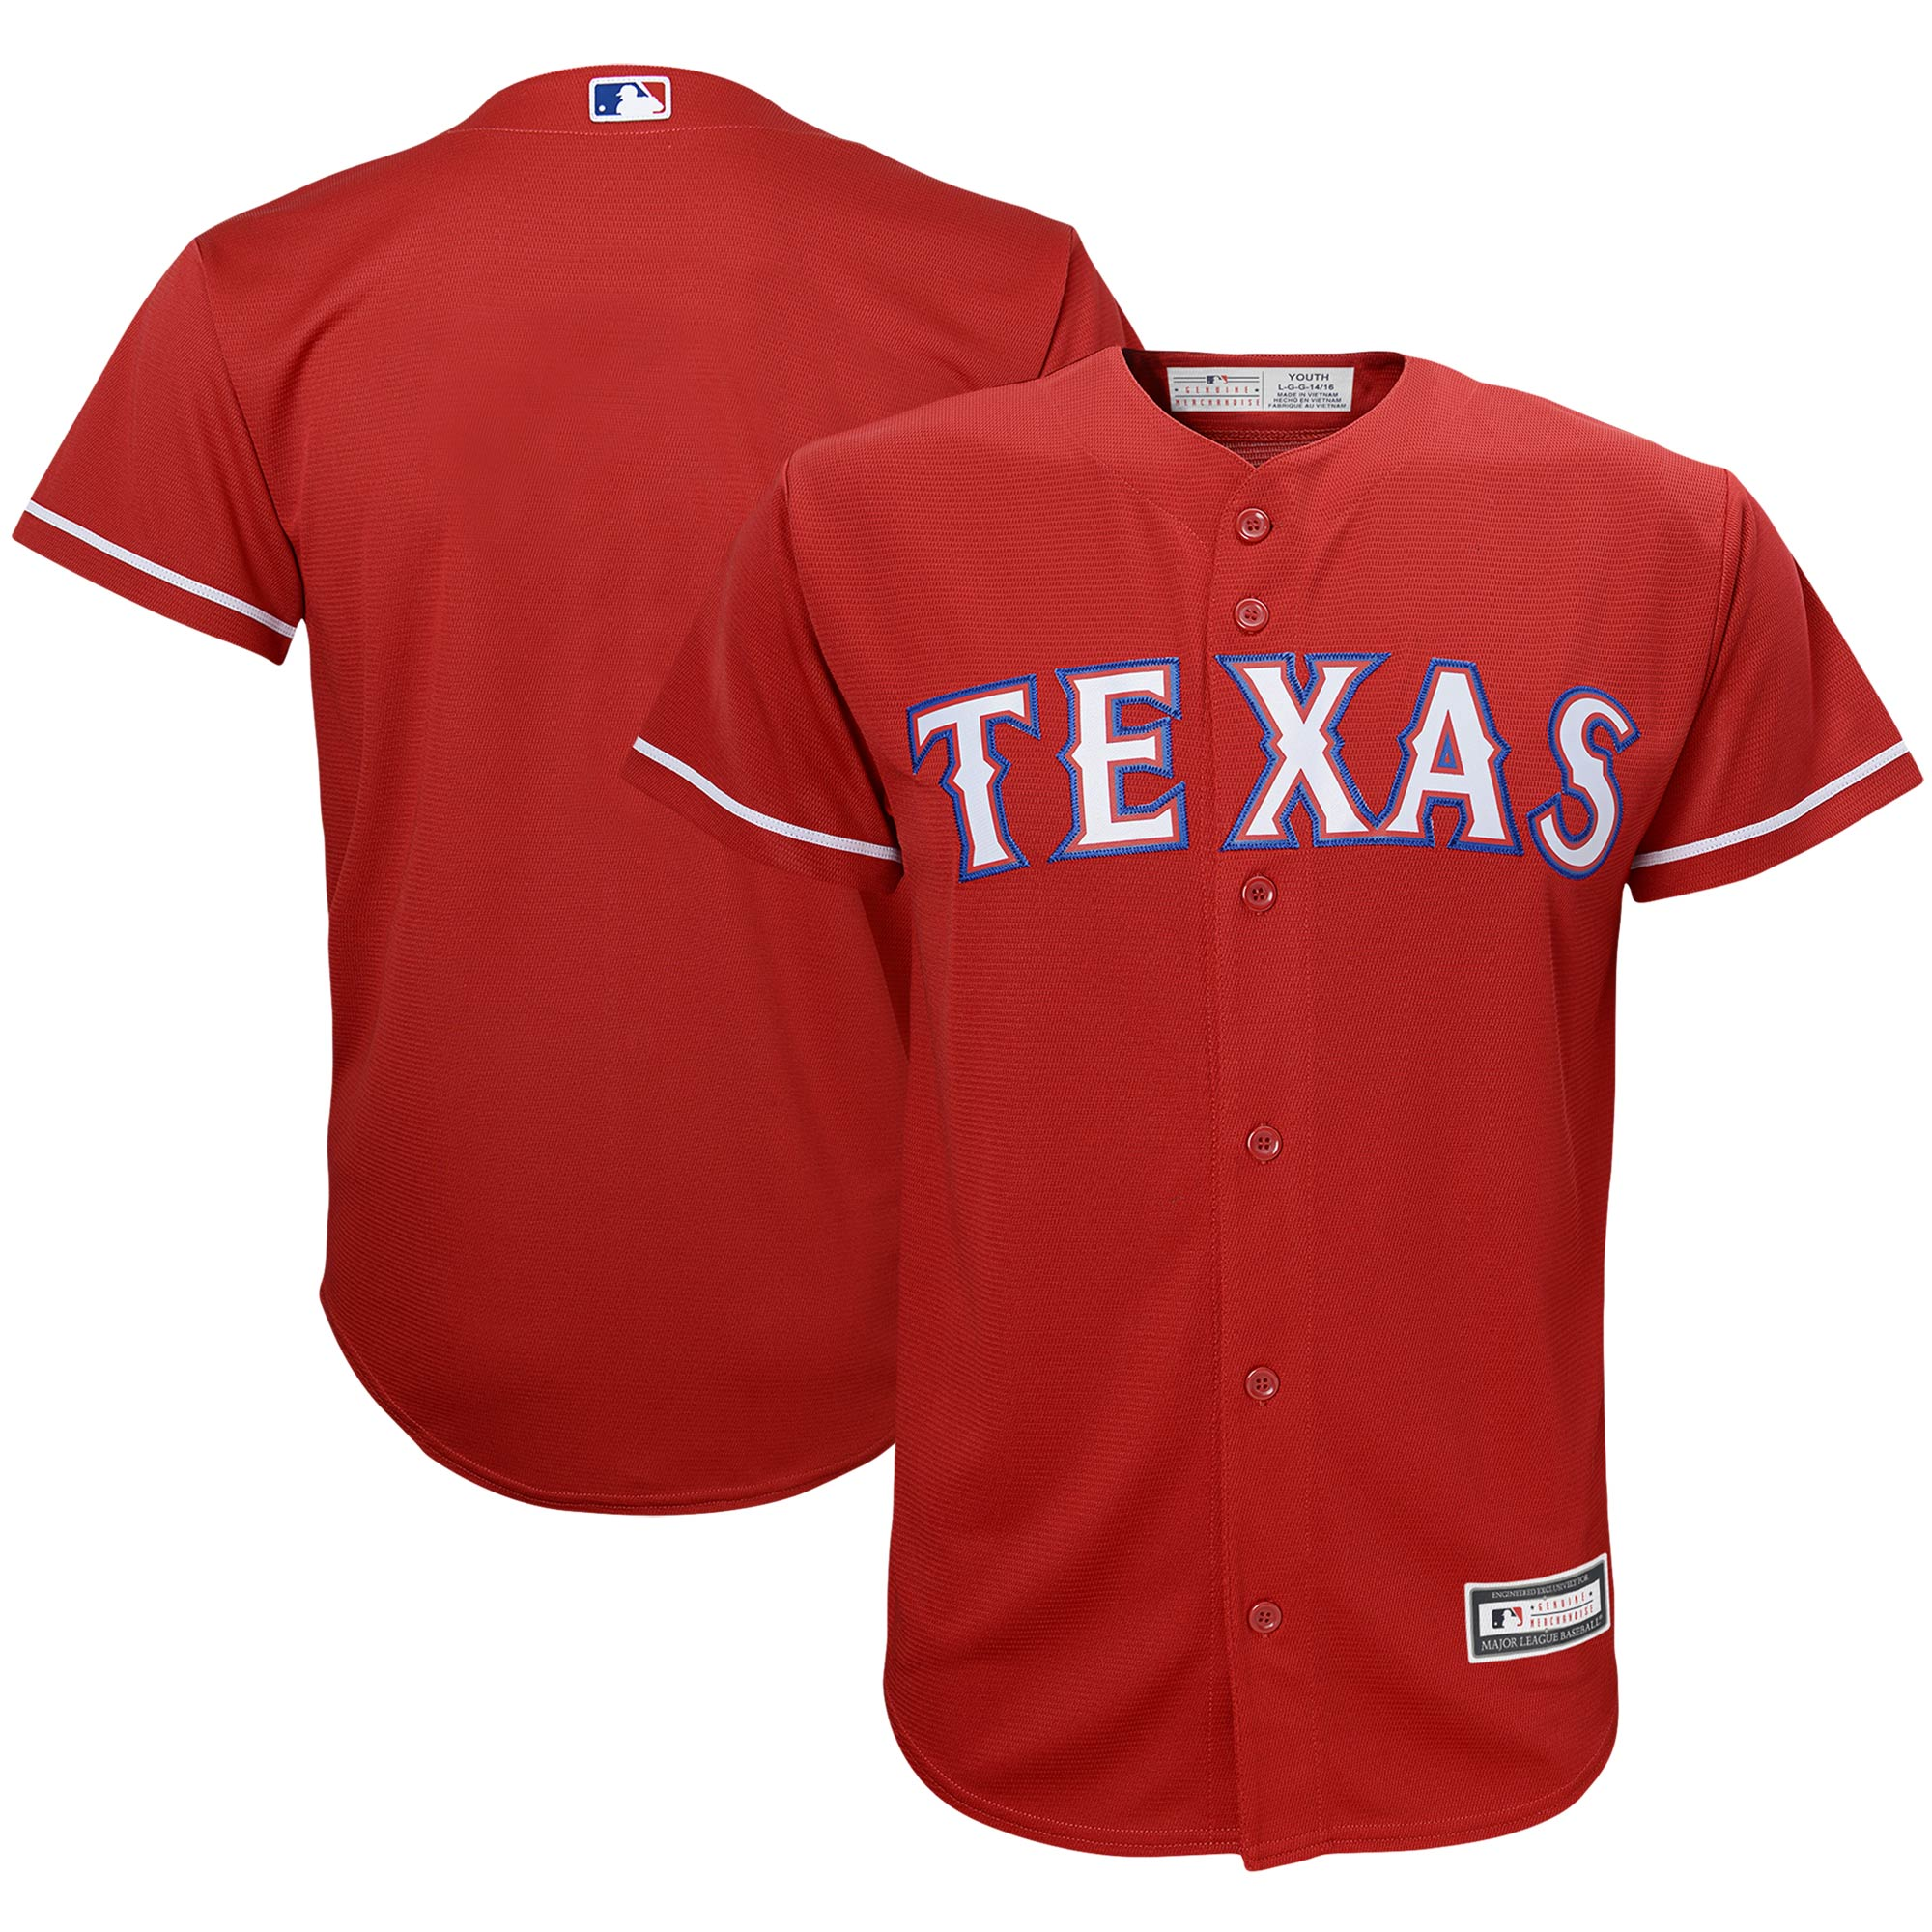 Texas Rangers Youth Replica Team Jersey - Scarlet